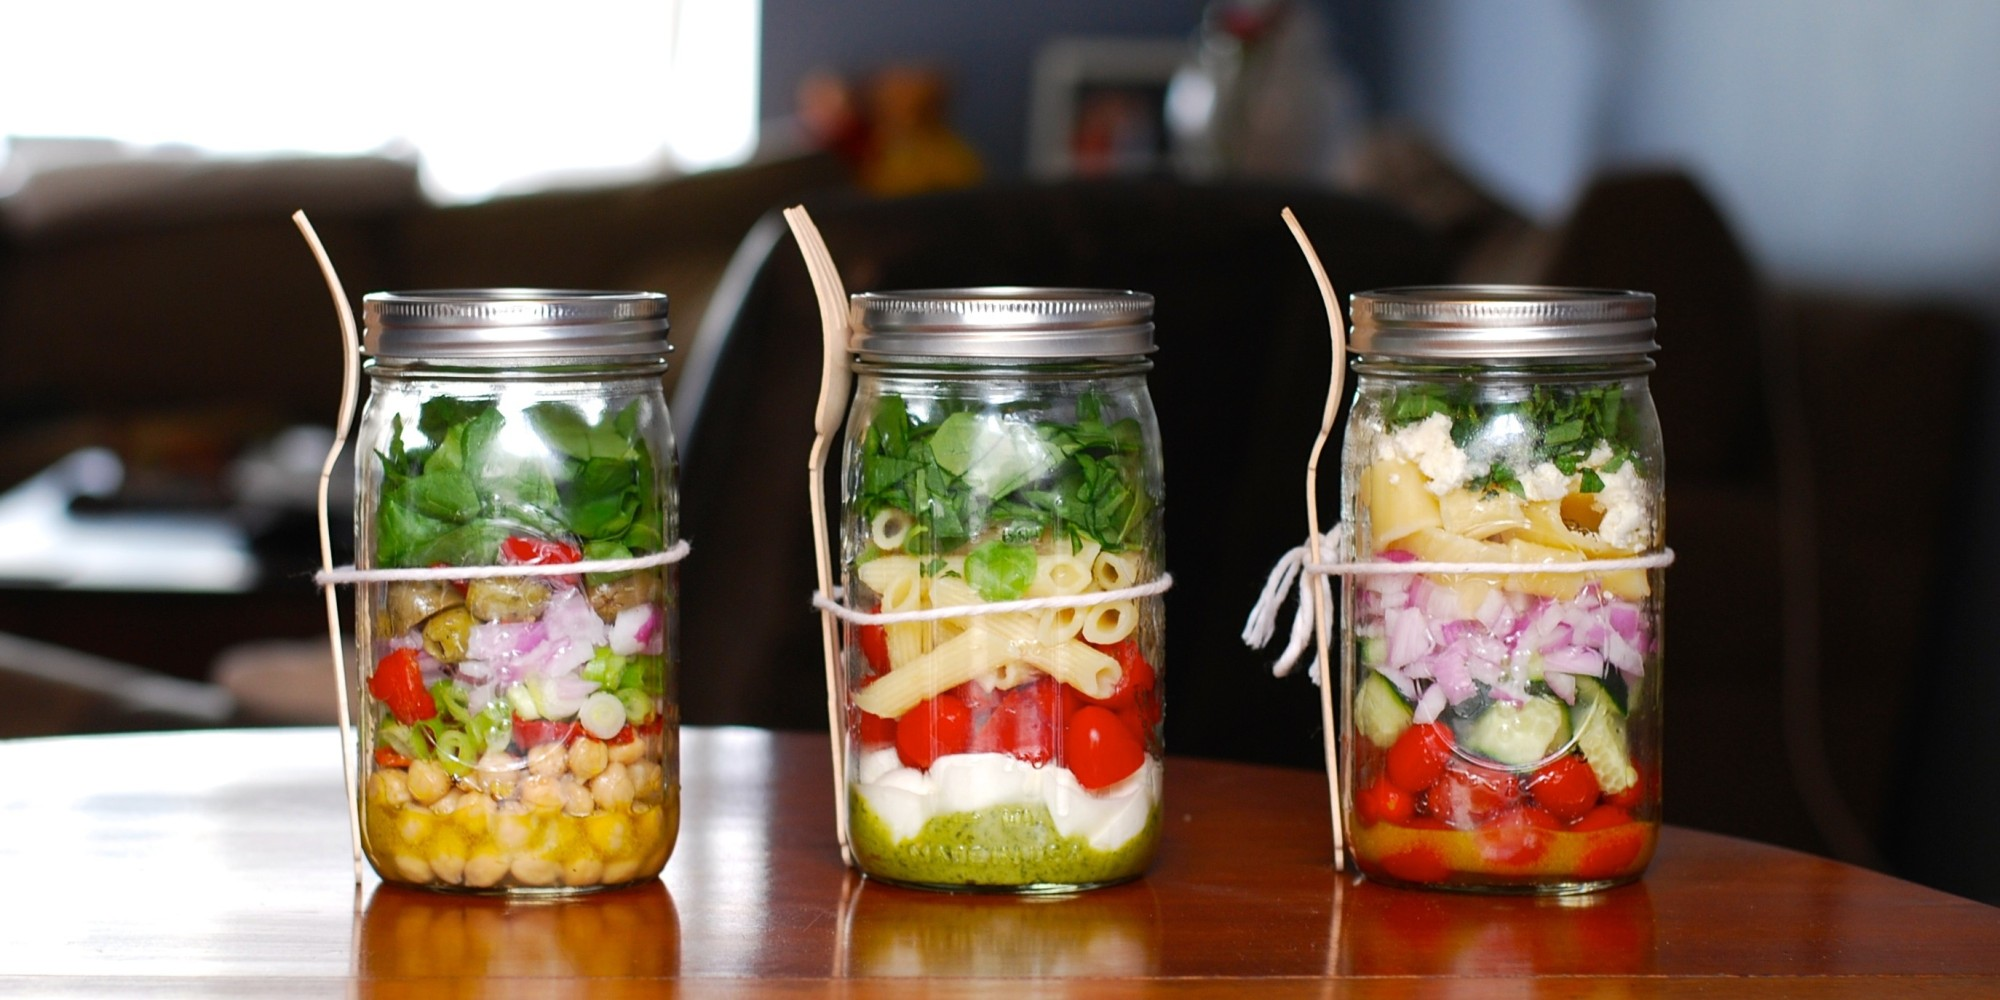 These Jar Salads Could be the Answer to Your Lunchtime Woes